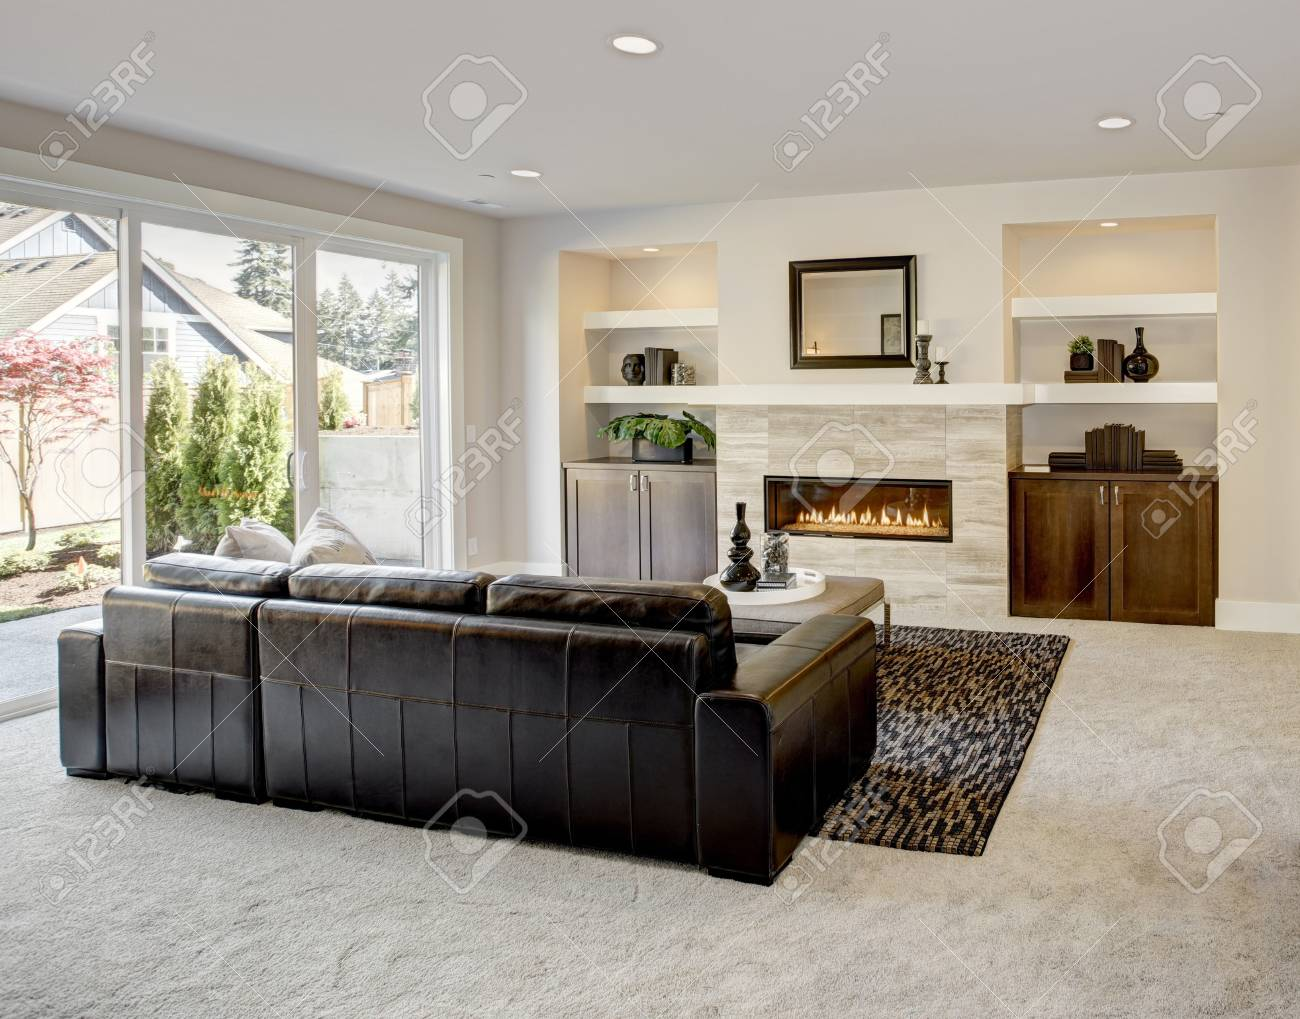 Family Room Design With Traditional Fireplace Framed By Built In Shelves  And Cabinets. Northwest,